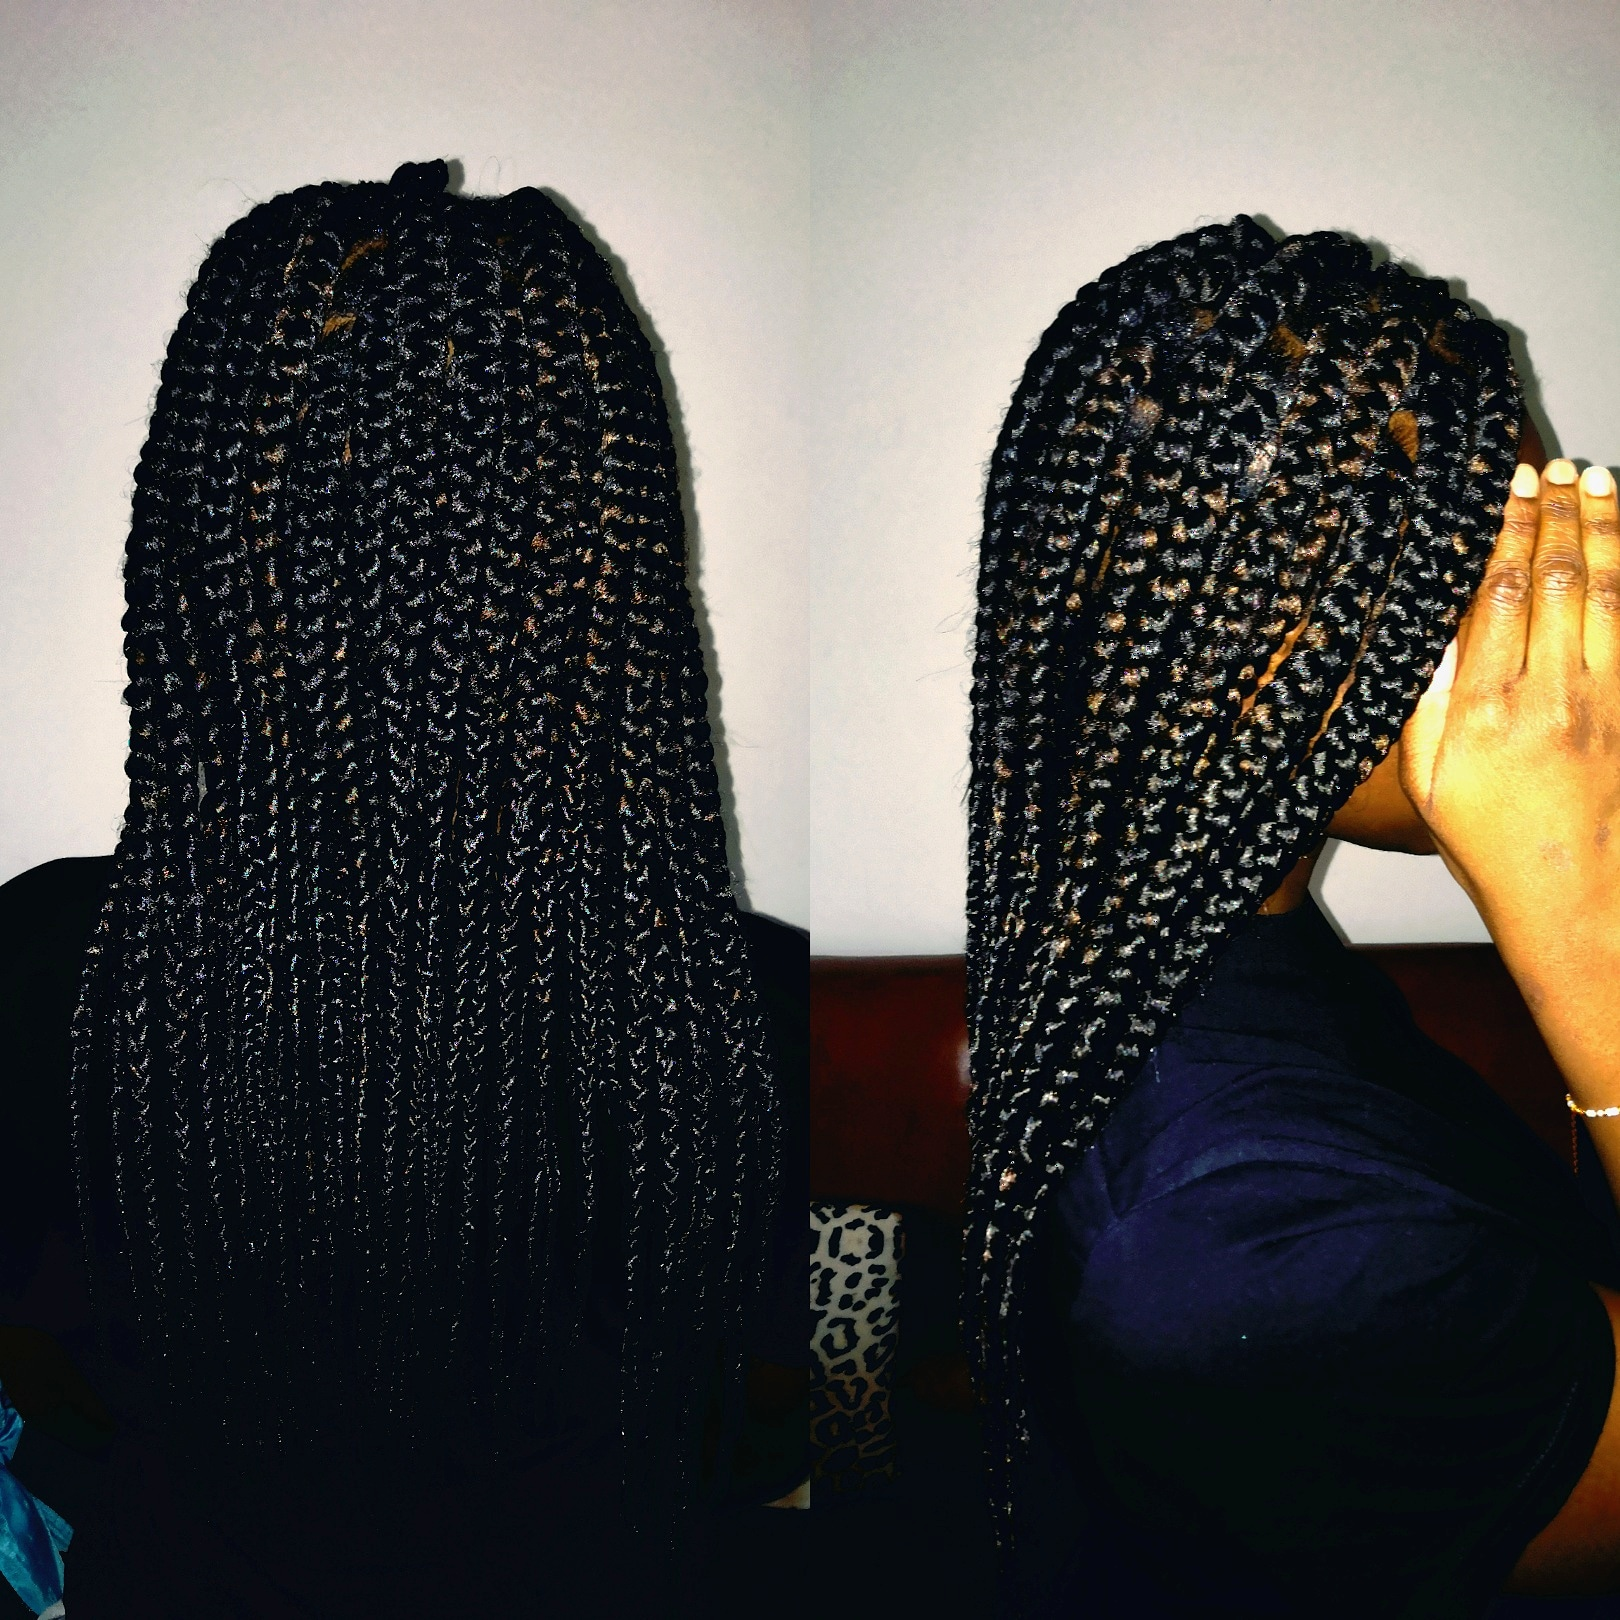 salon de coiffure afro tresse tresses box braids crochet braids vanilles tissages paris 75 77 78 91 92 93 94 95 OHYYWVDY